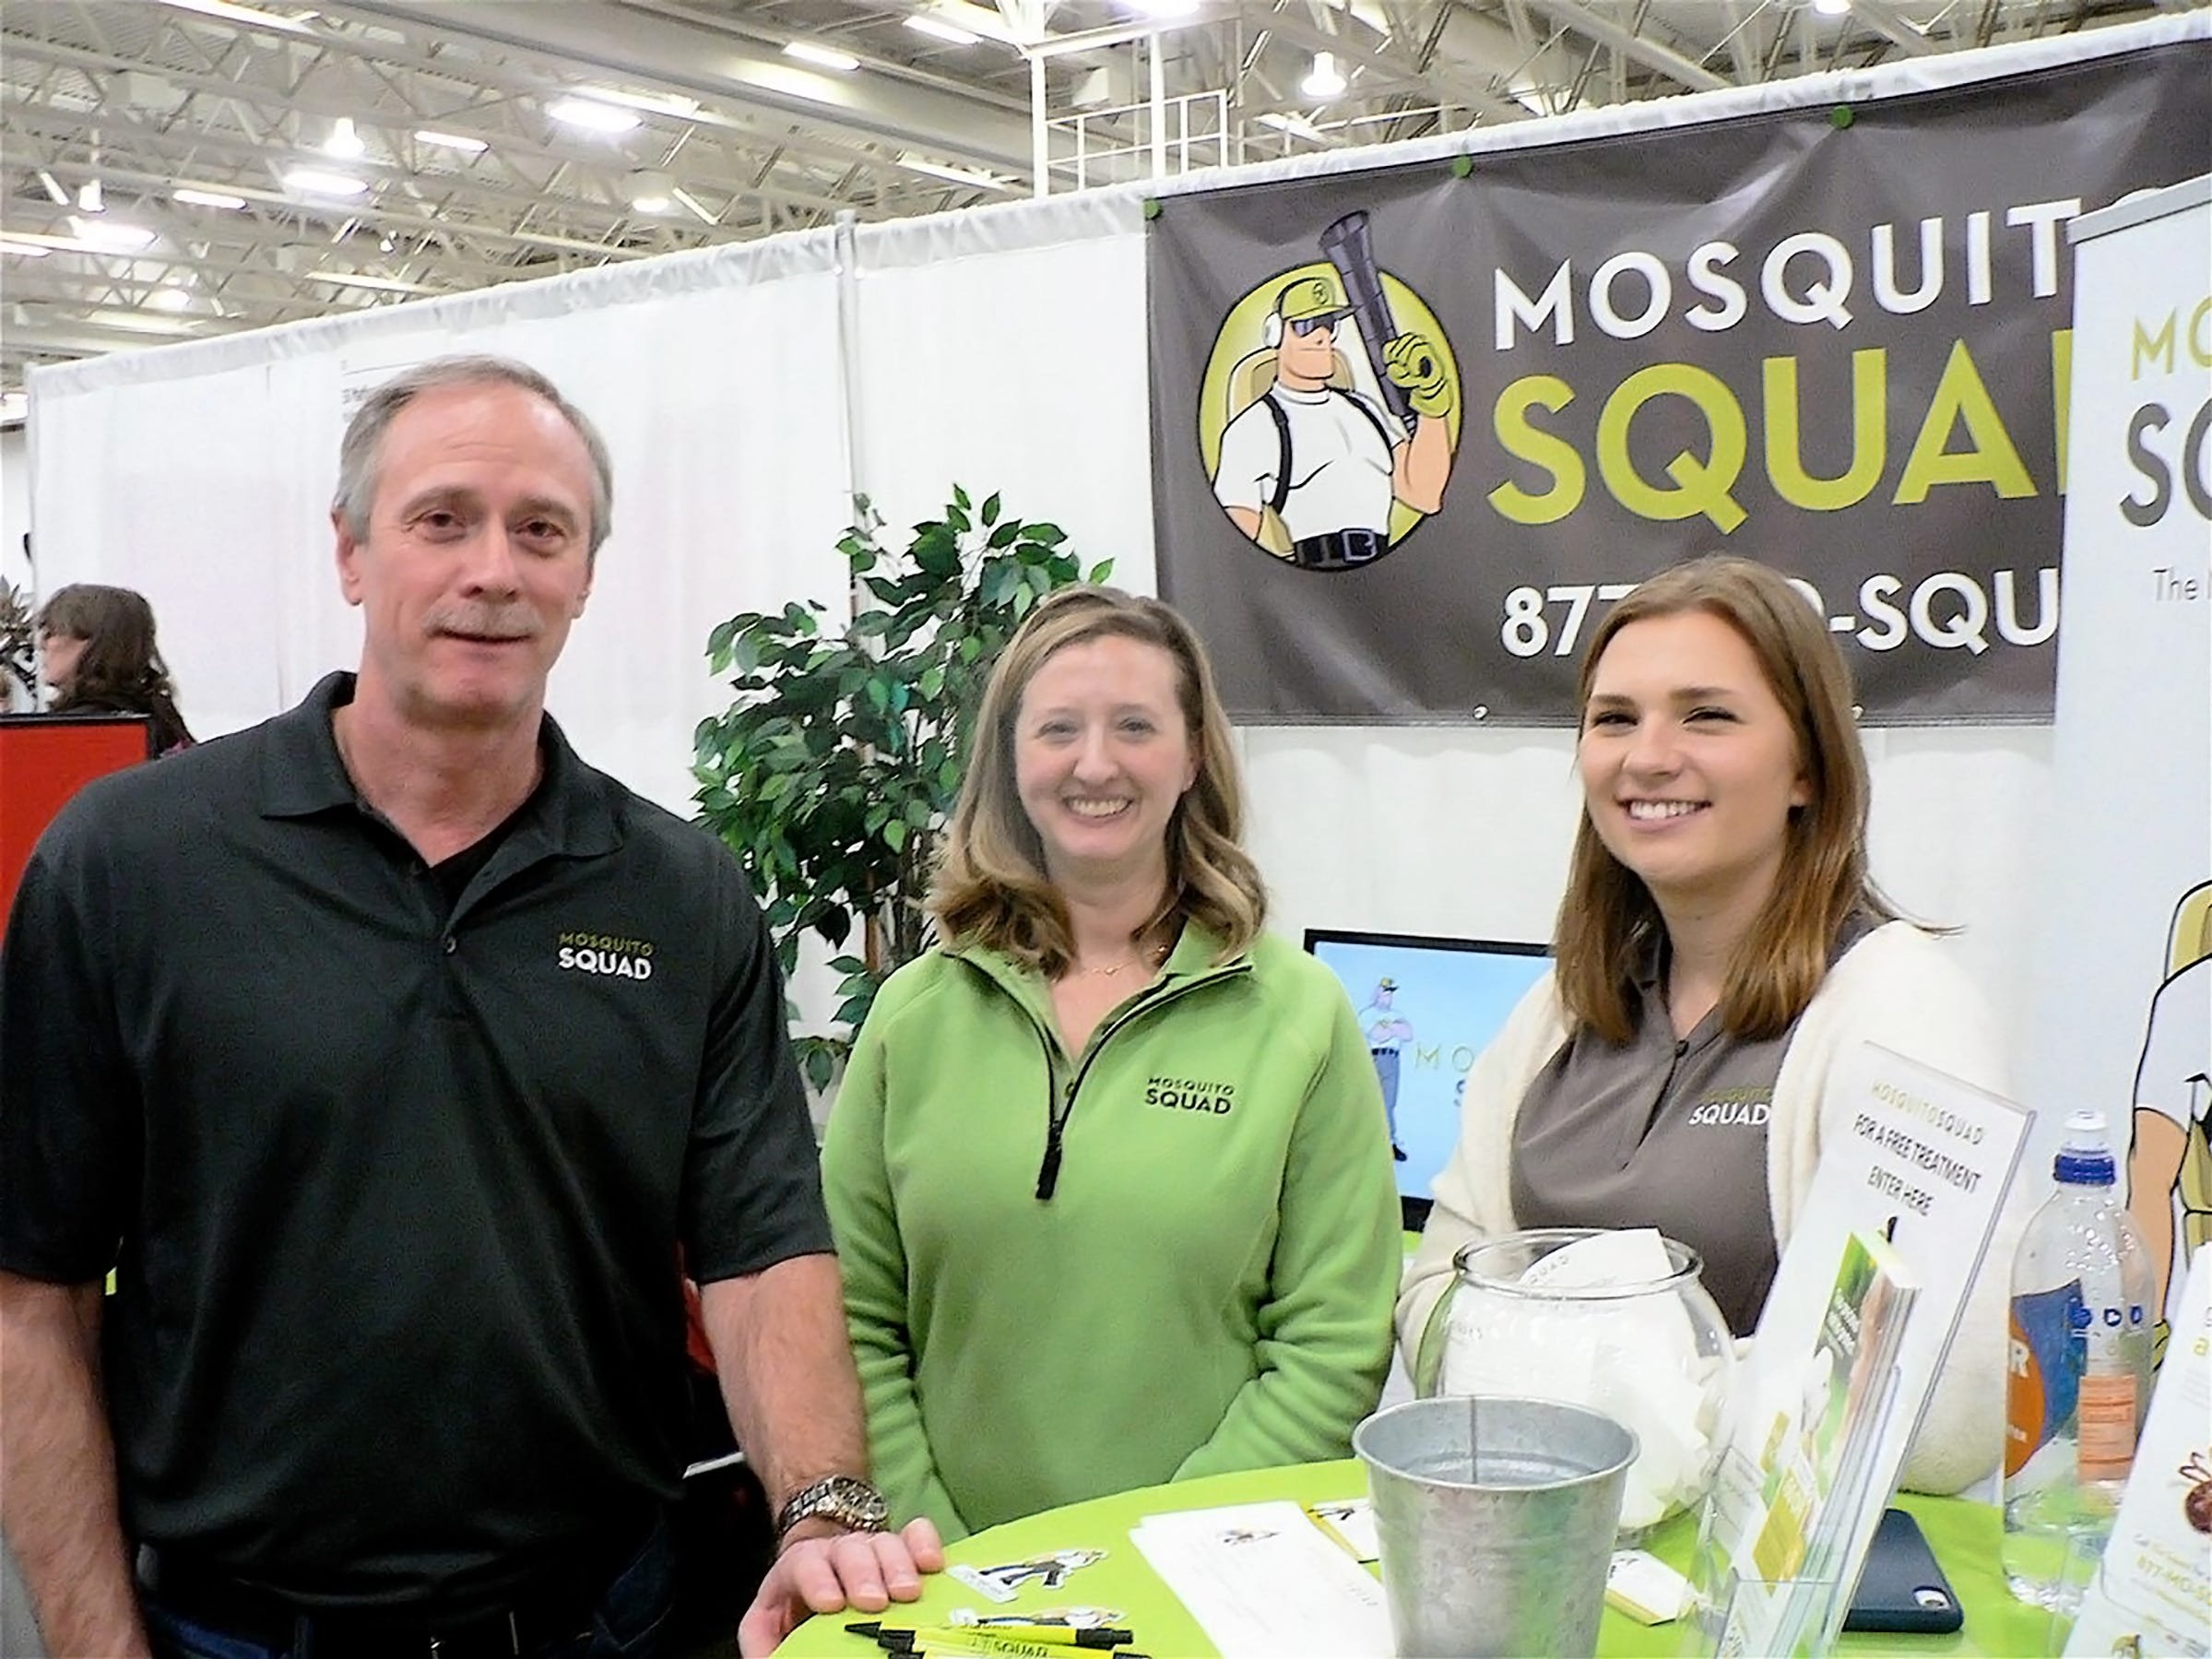 The Mosquito Squad, new to the Madison area but in six other state locations.